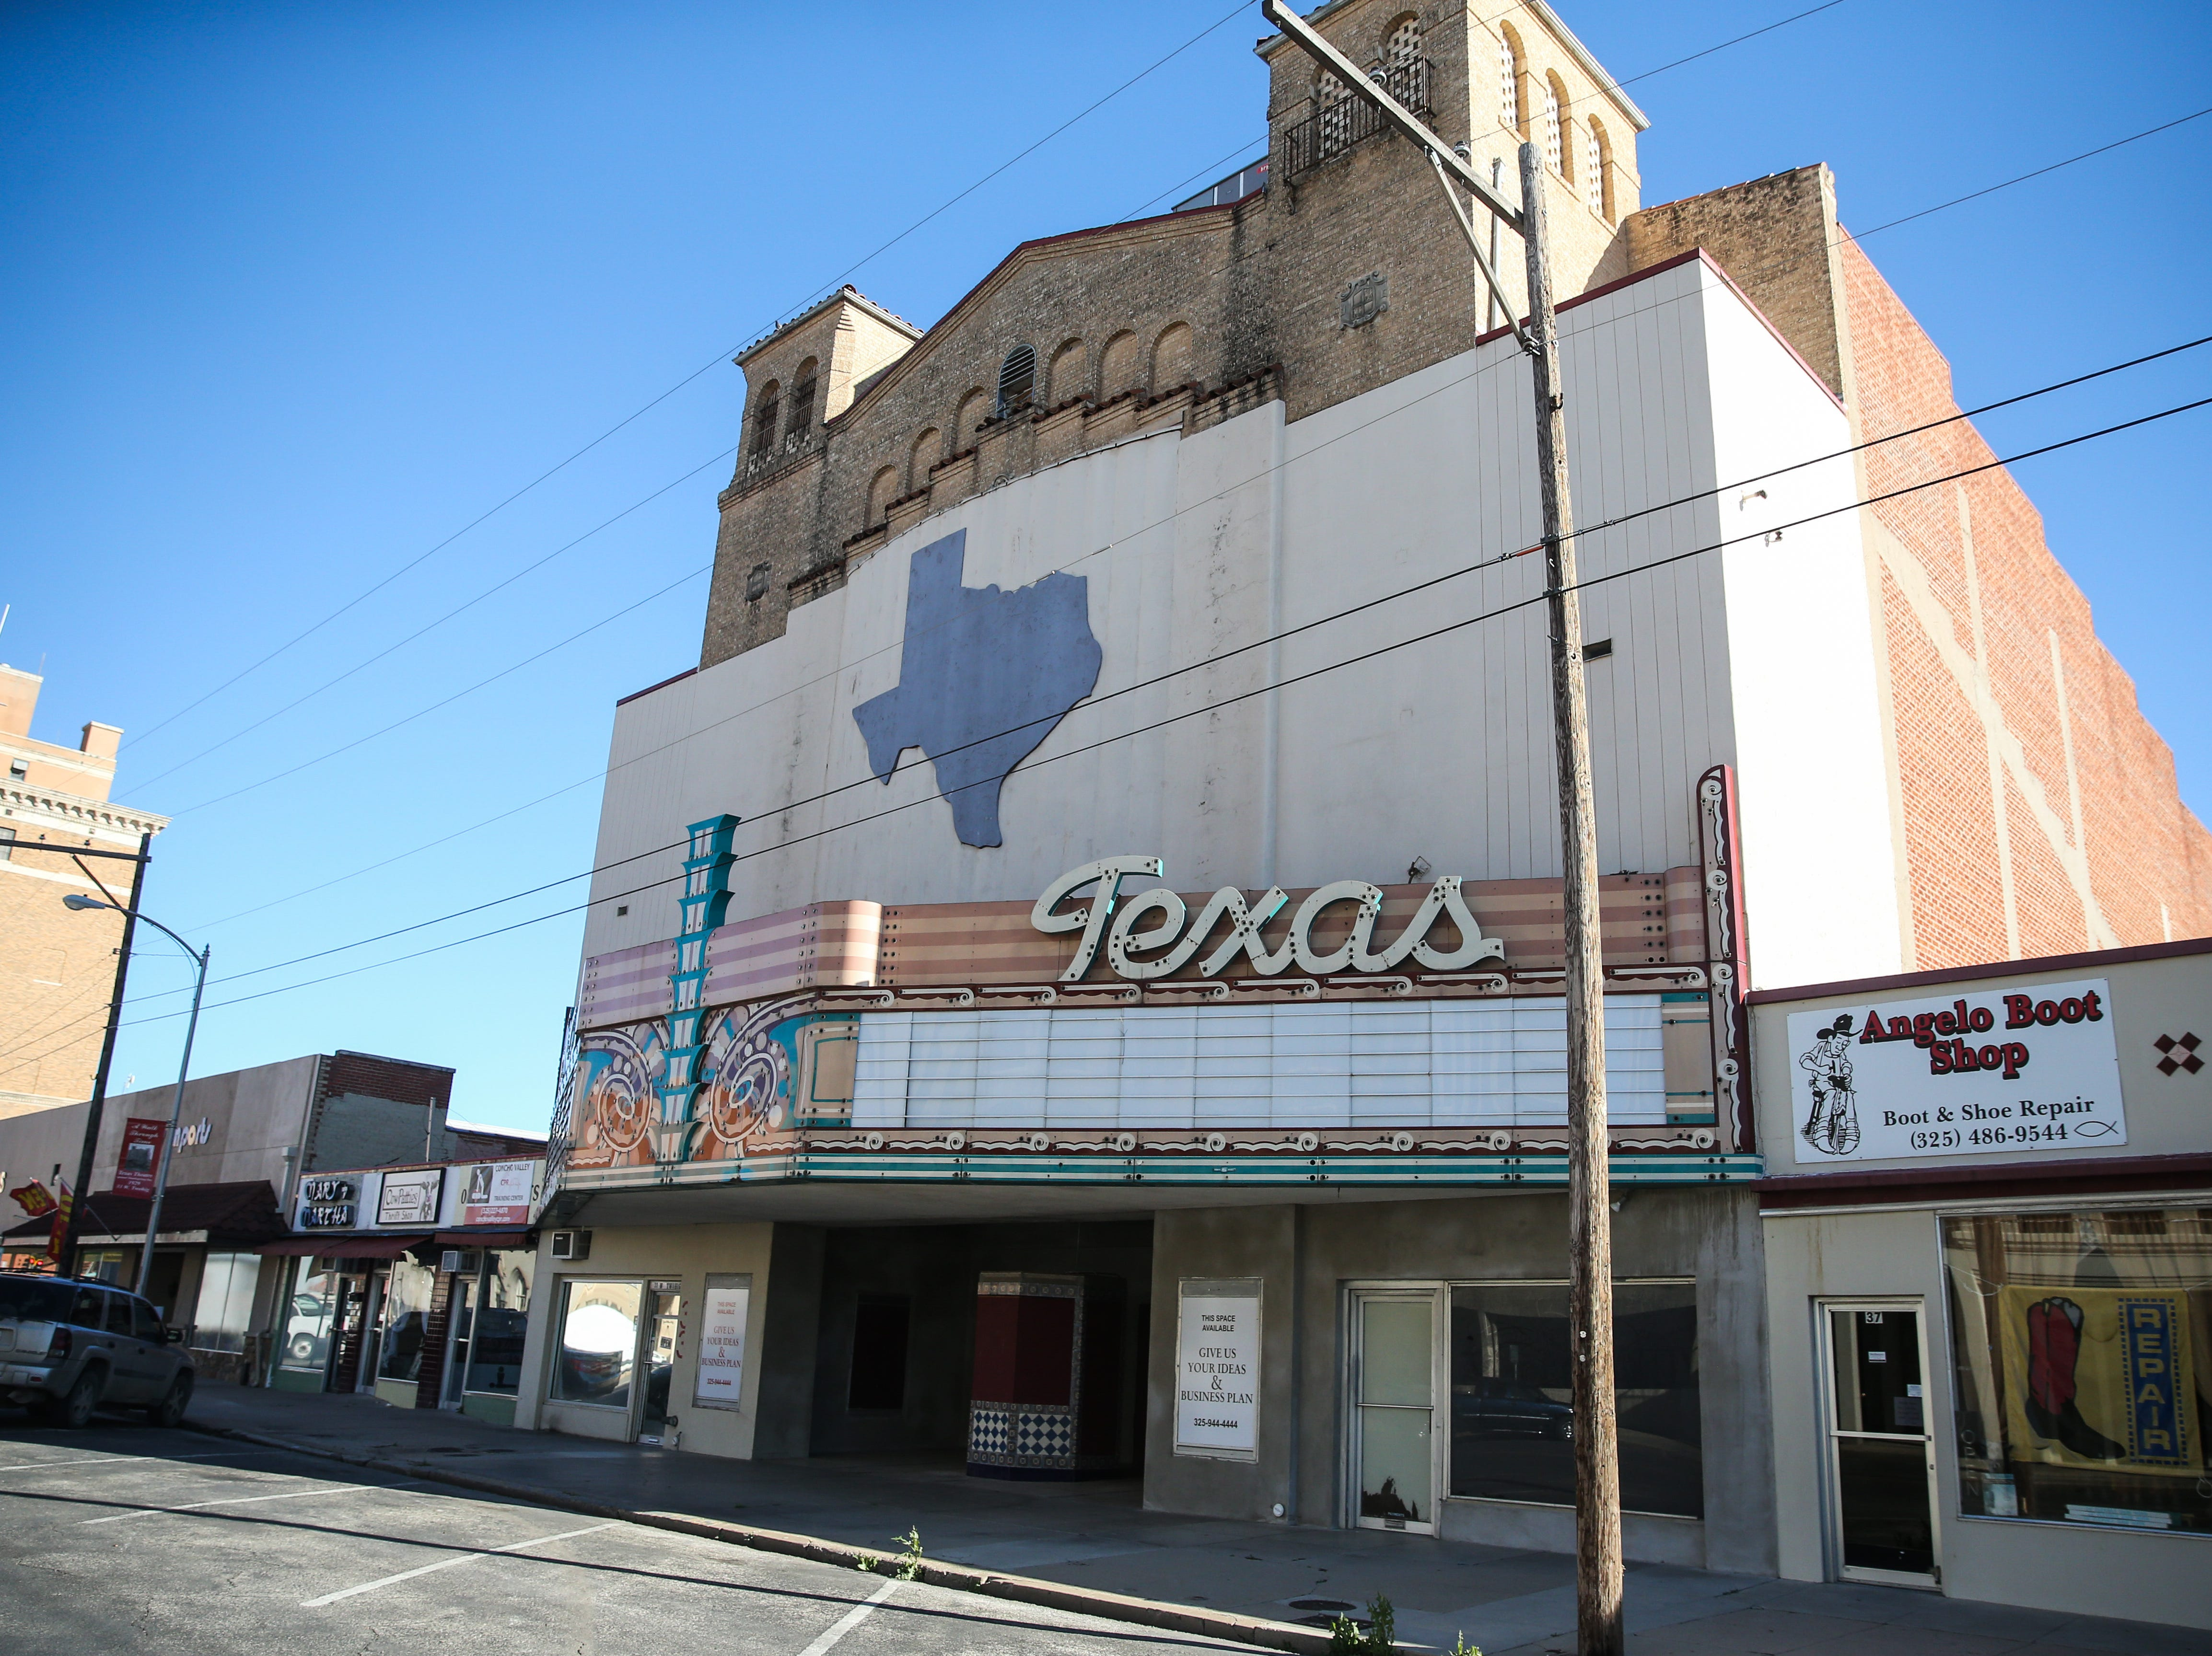 Lee Pfluger purchased the Texas Theatre in 1998 and it's been unused since 2015.